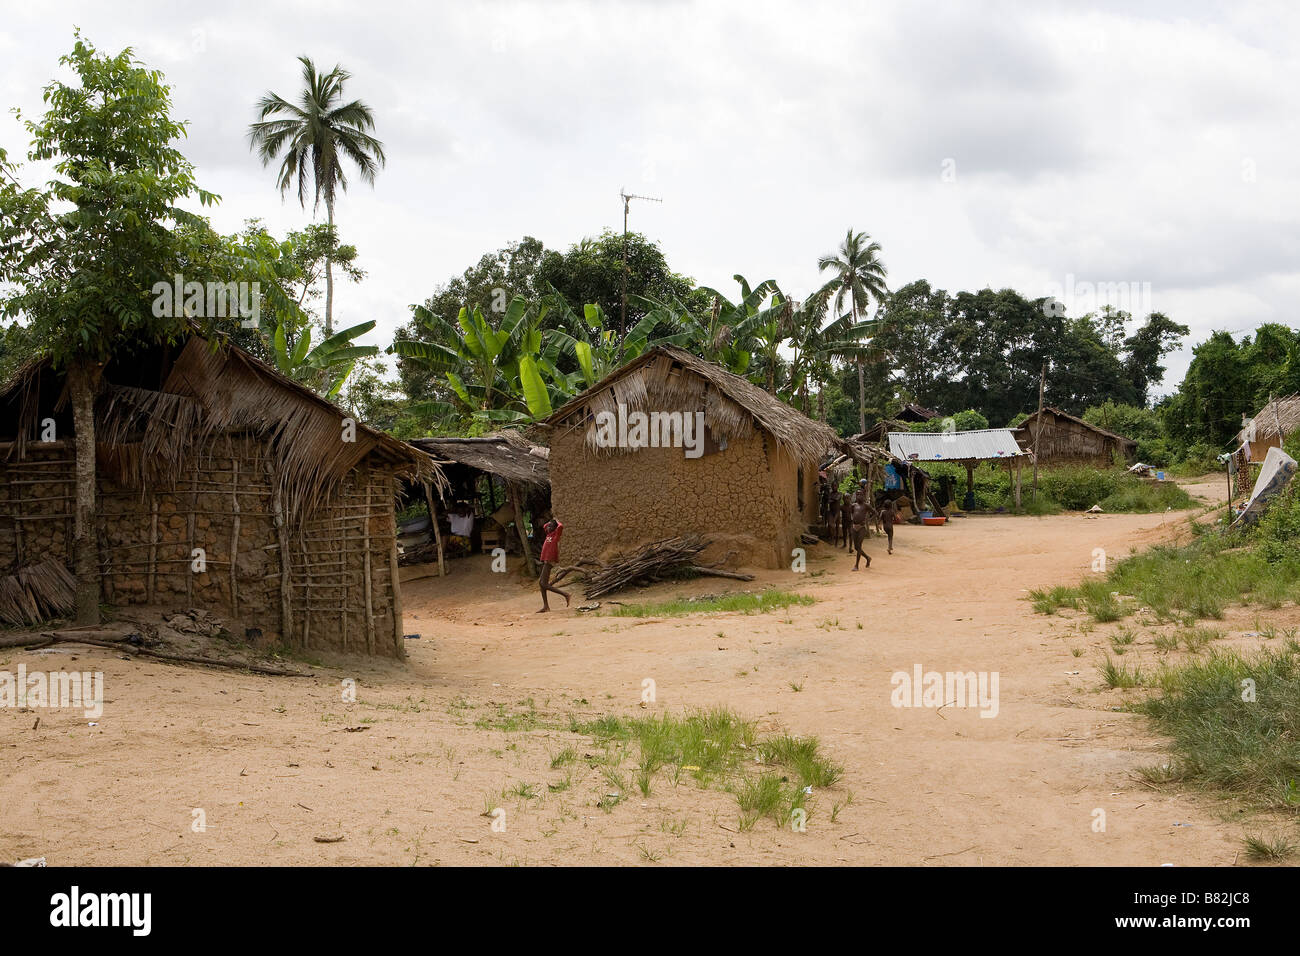 Scenic View Of A Remote Nigerian Village In The Middle Of